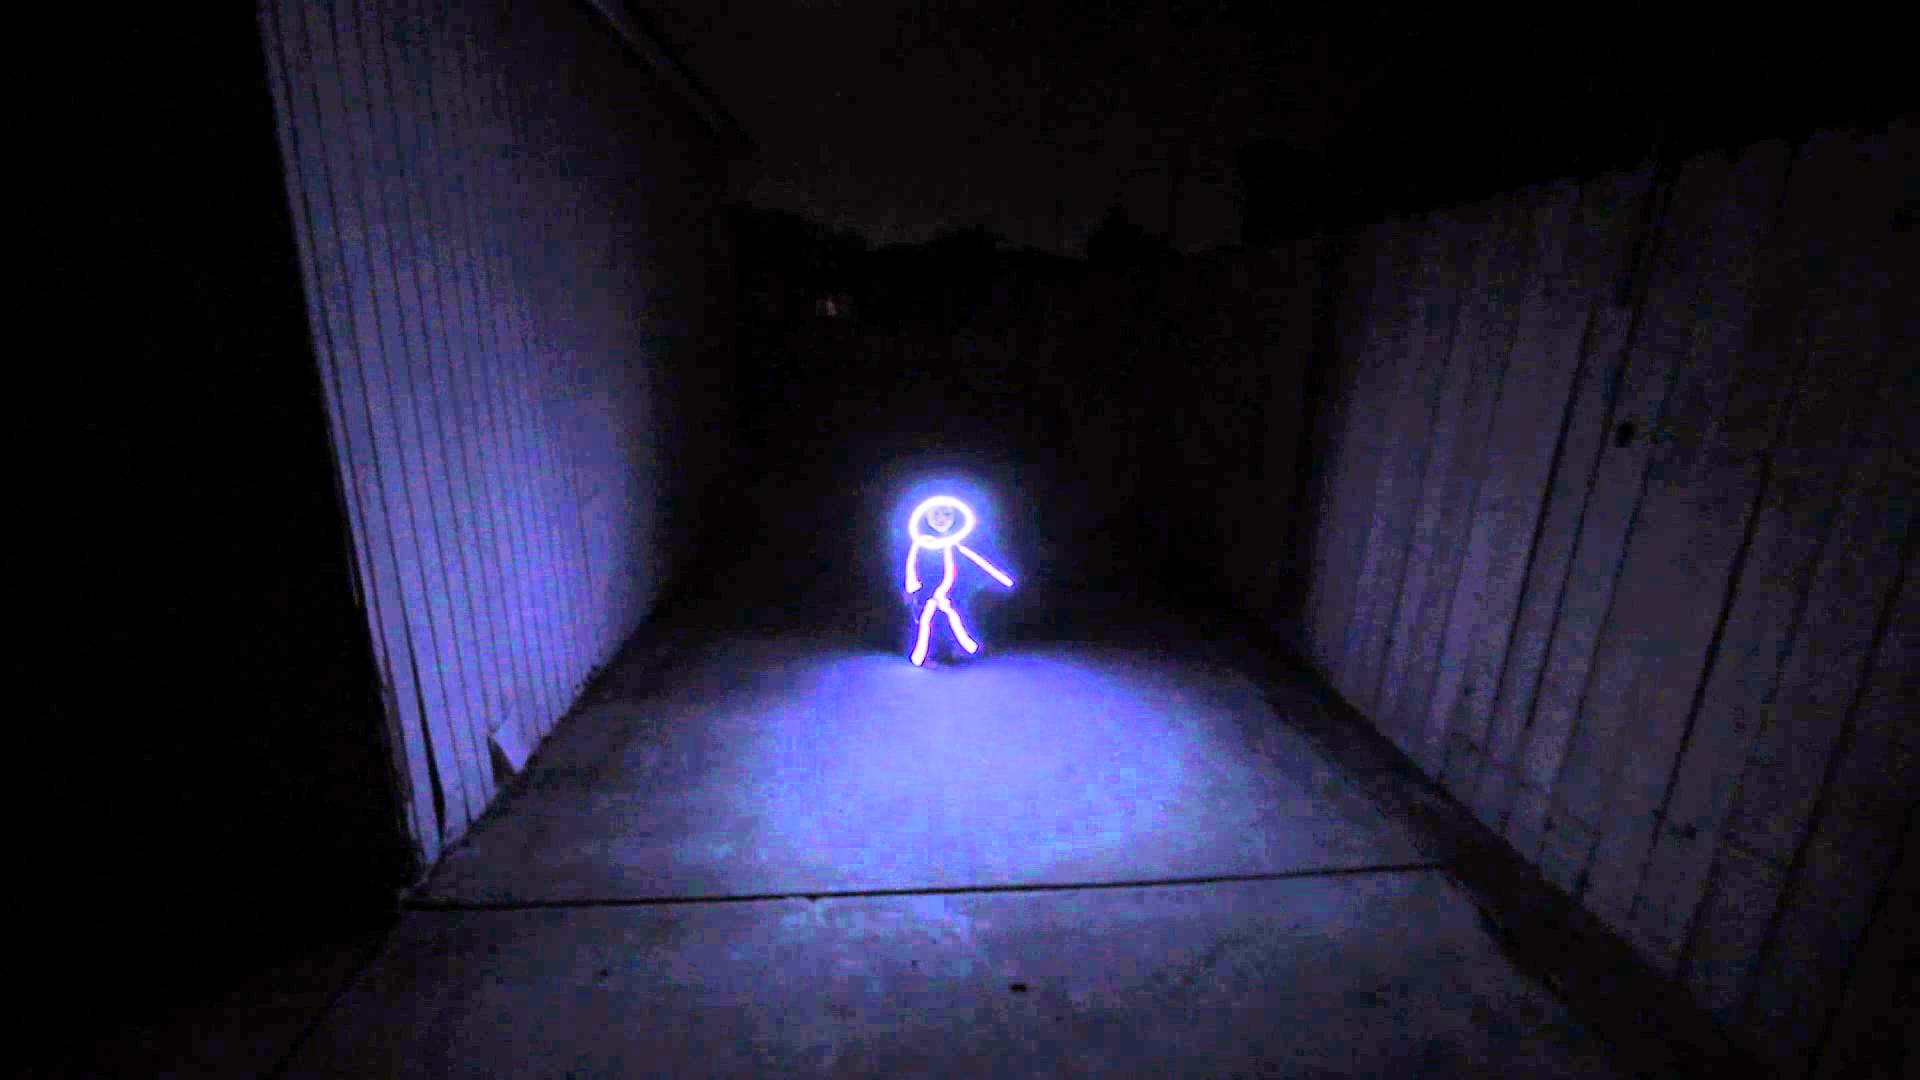 Cute Skeleton Girl Wallpaper Baby Dressed Up As A Glowing Led Stick Figure For Halloween